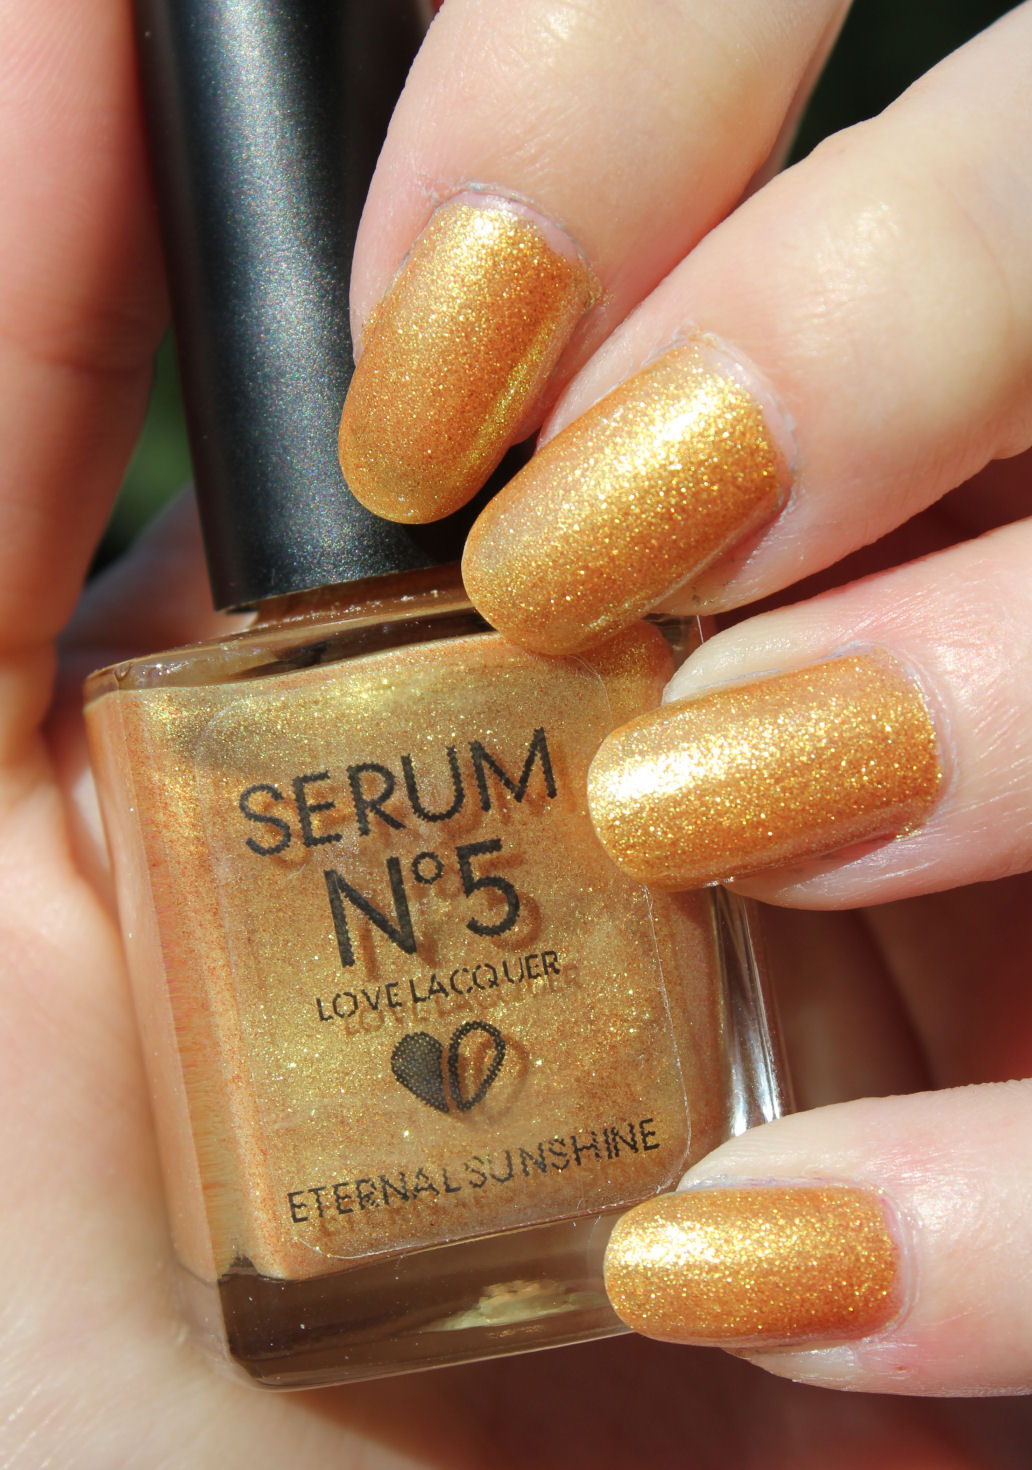 http://lacquediction.blogspot.de/2014/06/serum-no-5-eternal-sunshine.html